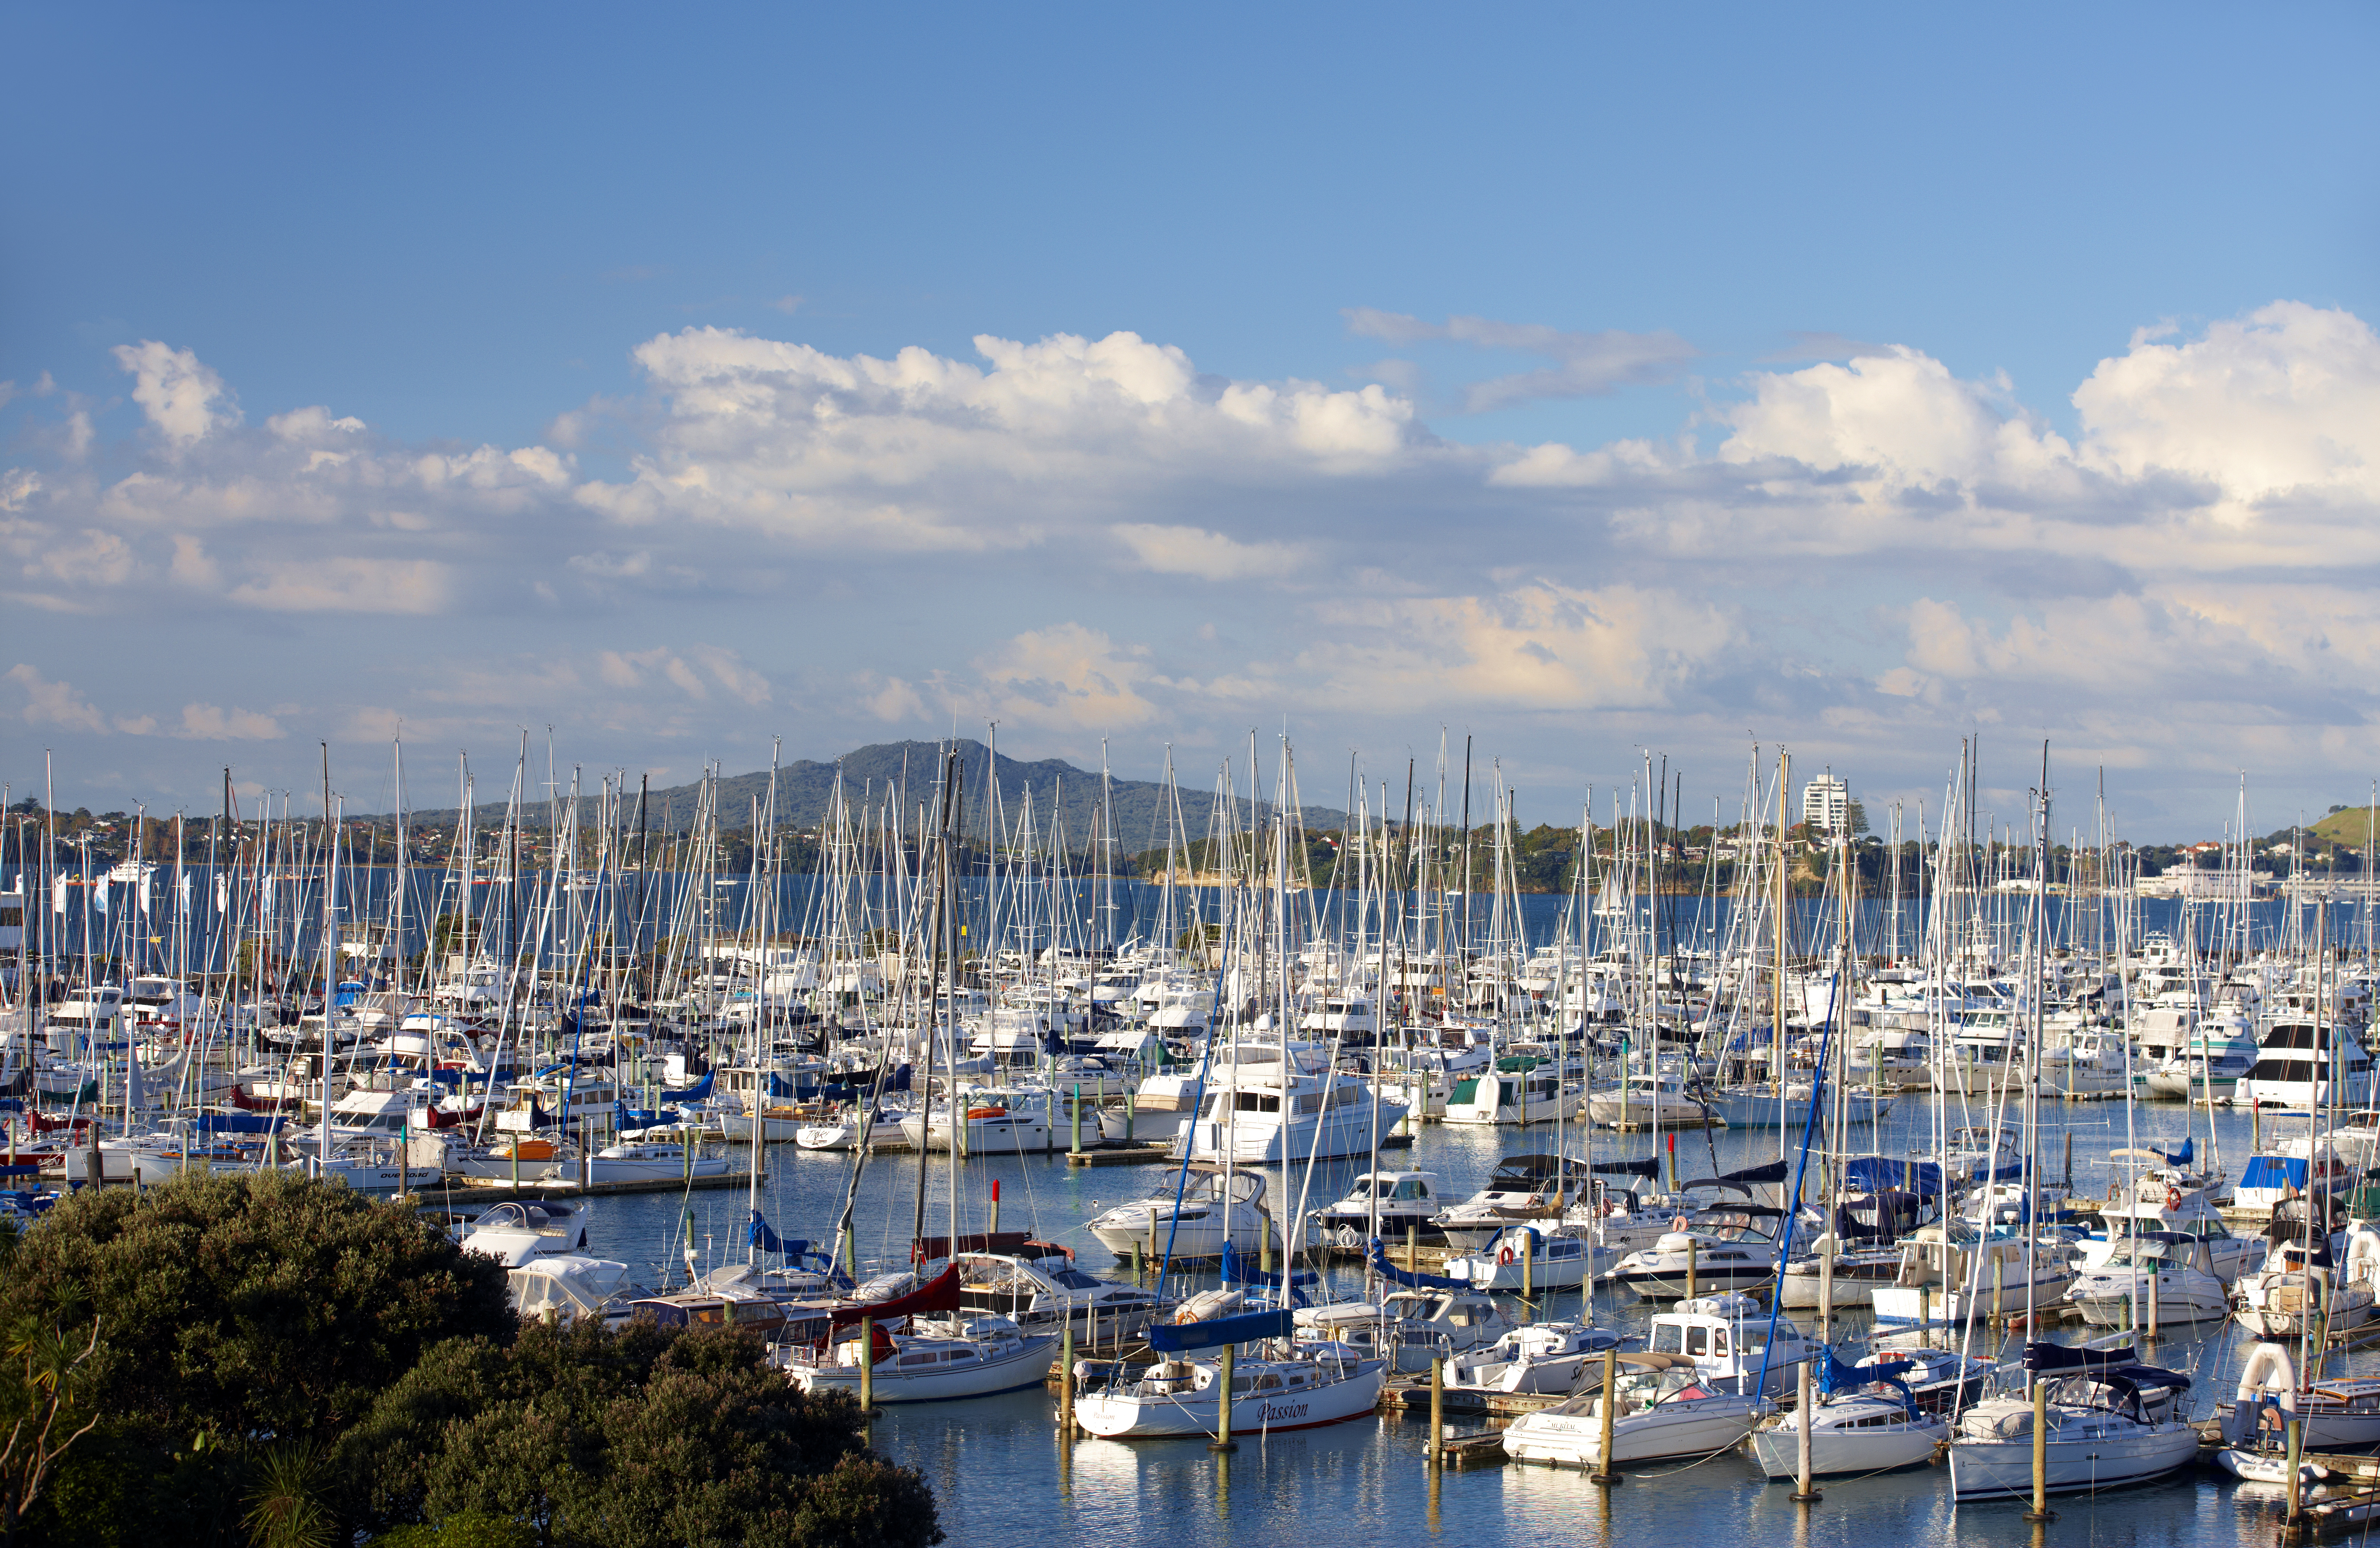 Westhaven Marina And Rangitoto_77928.jpg